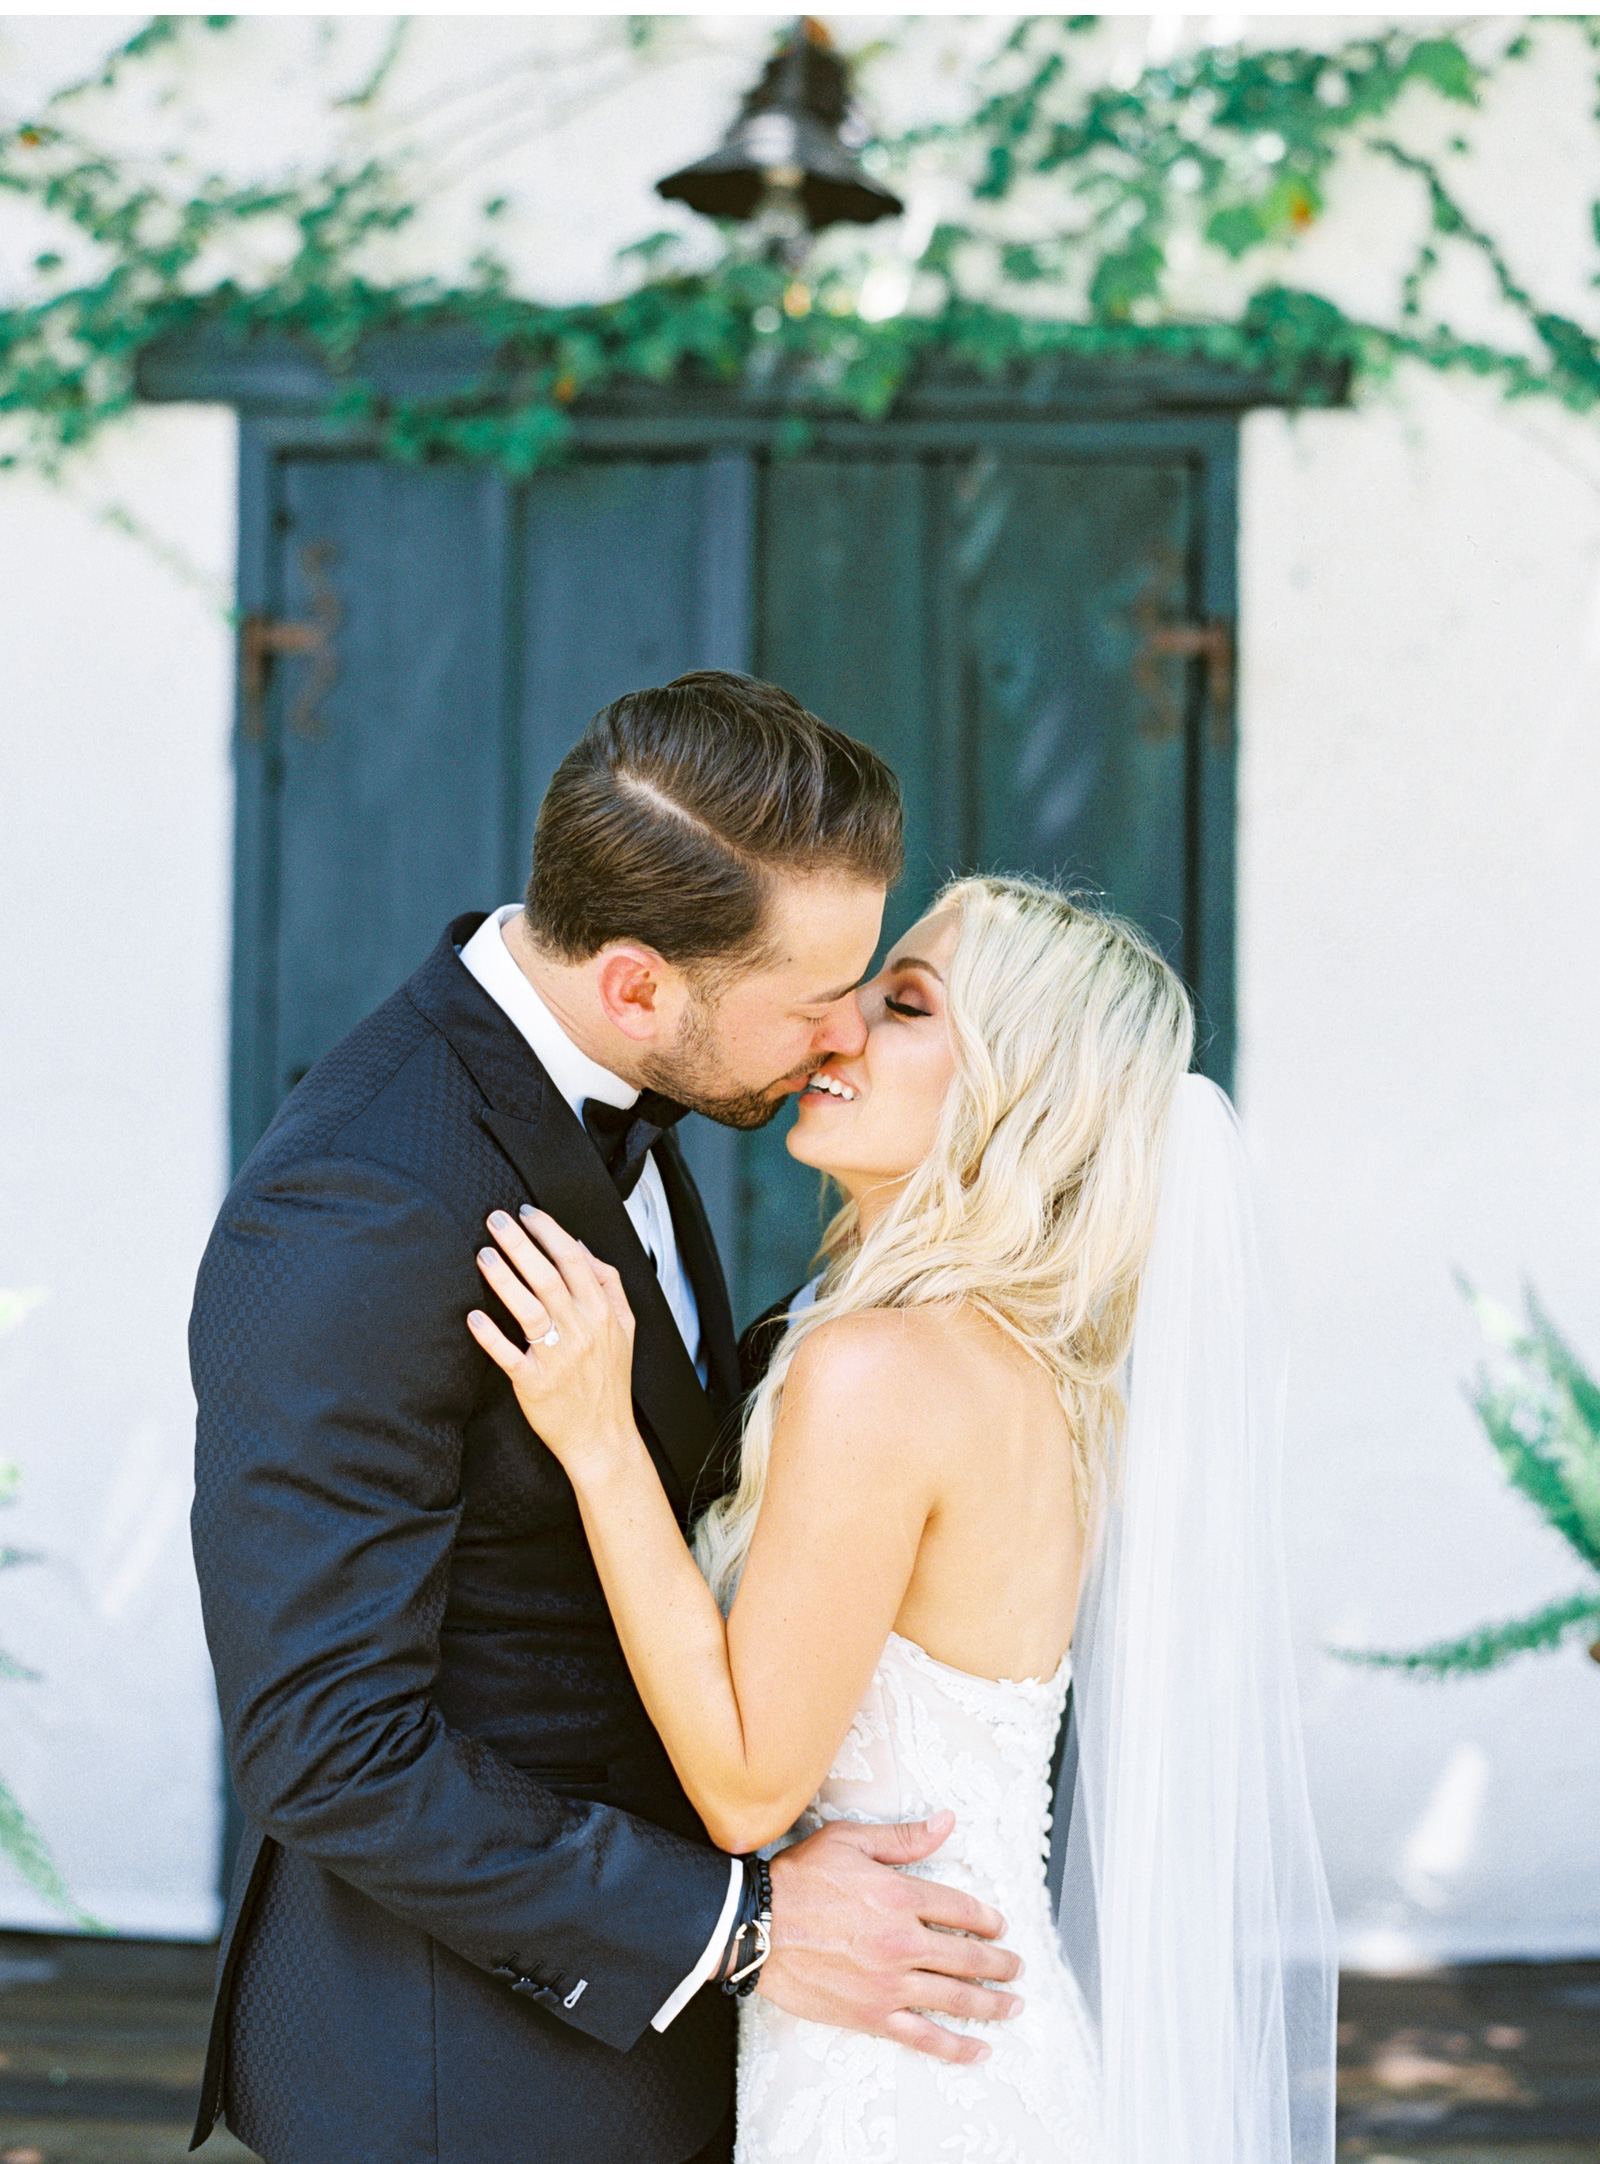 San-Juan-Capistrano-Wedding-Photographer-Southern-California-Wedding-Venues-Malibu-Wedding-Photographer-Natalie-Schutt-Photography_08.jpg